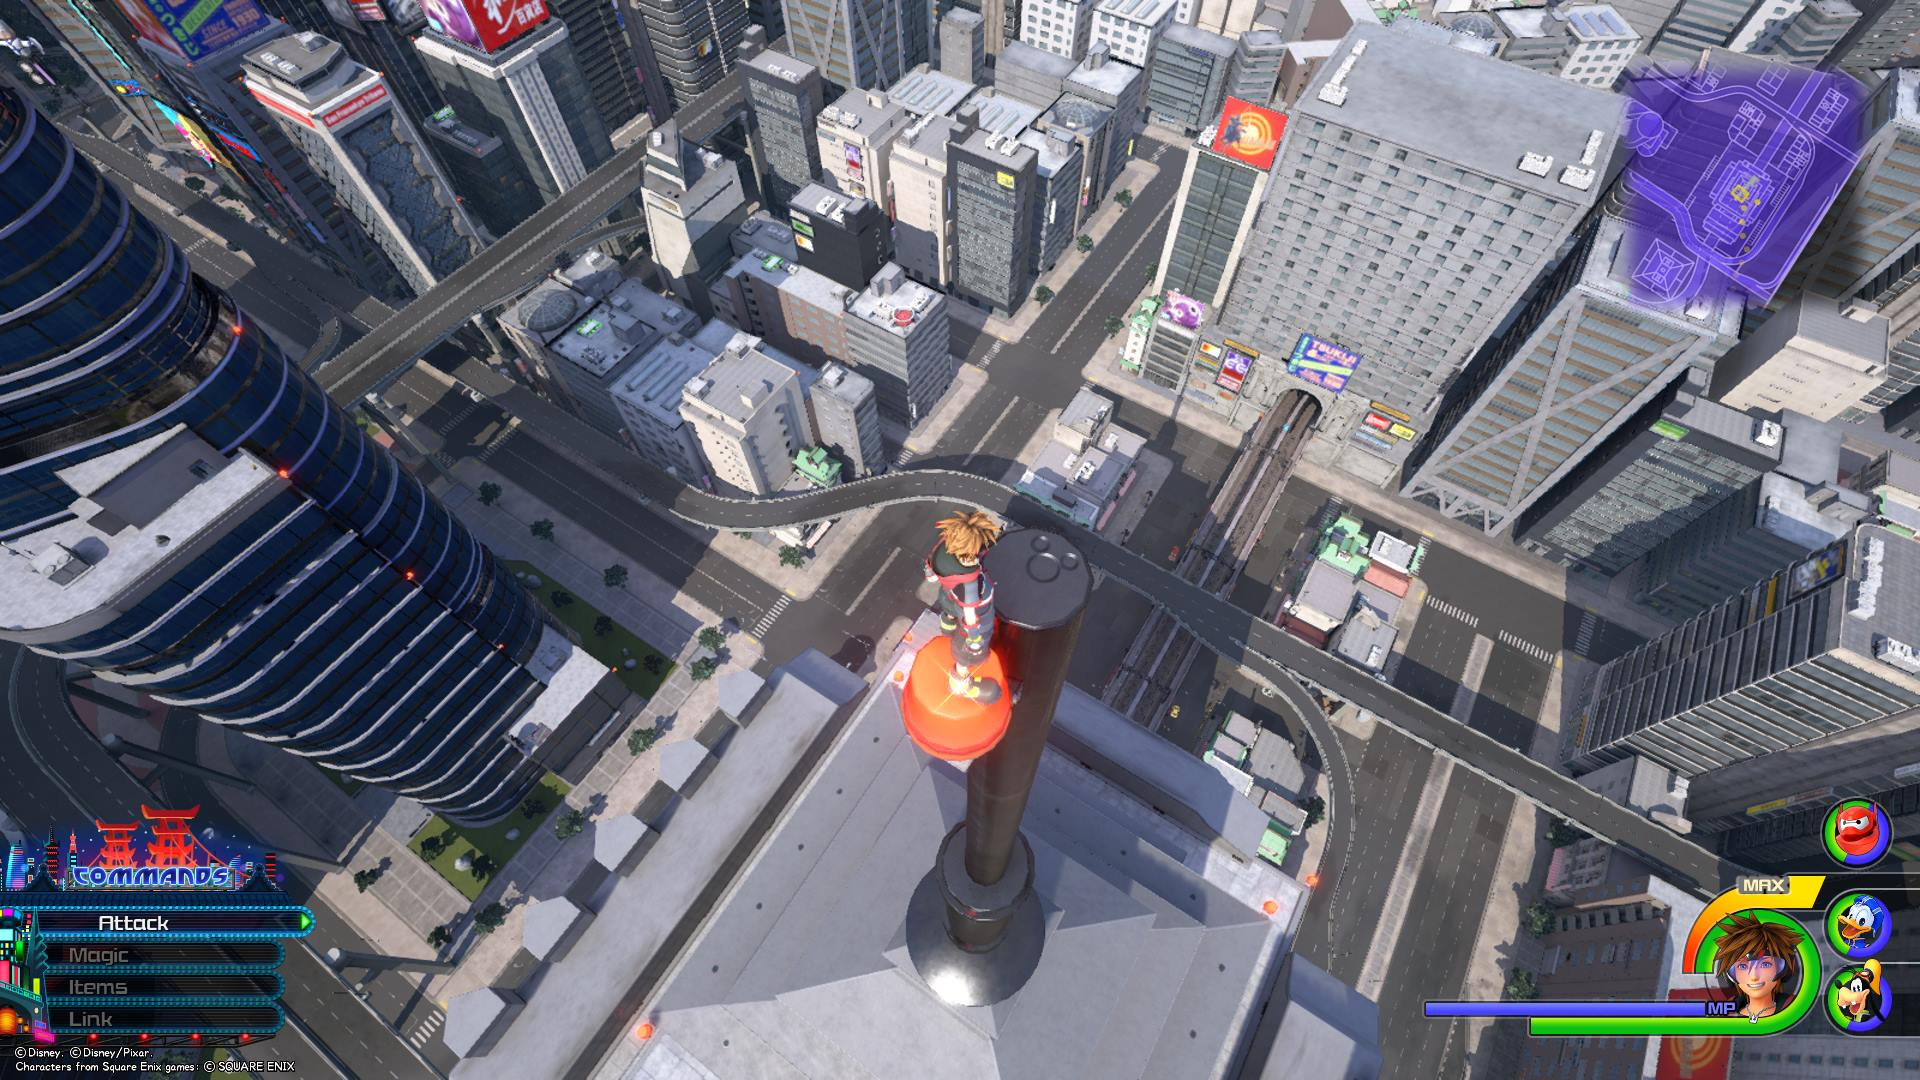 Directly behind where you found the eighth Lucky Emblem, climb up the building, then Airstep to the top of a pole to find the ninth Lucky Emblem.